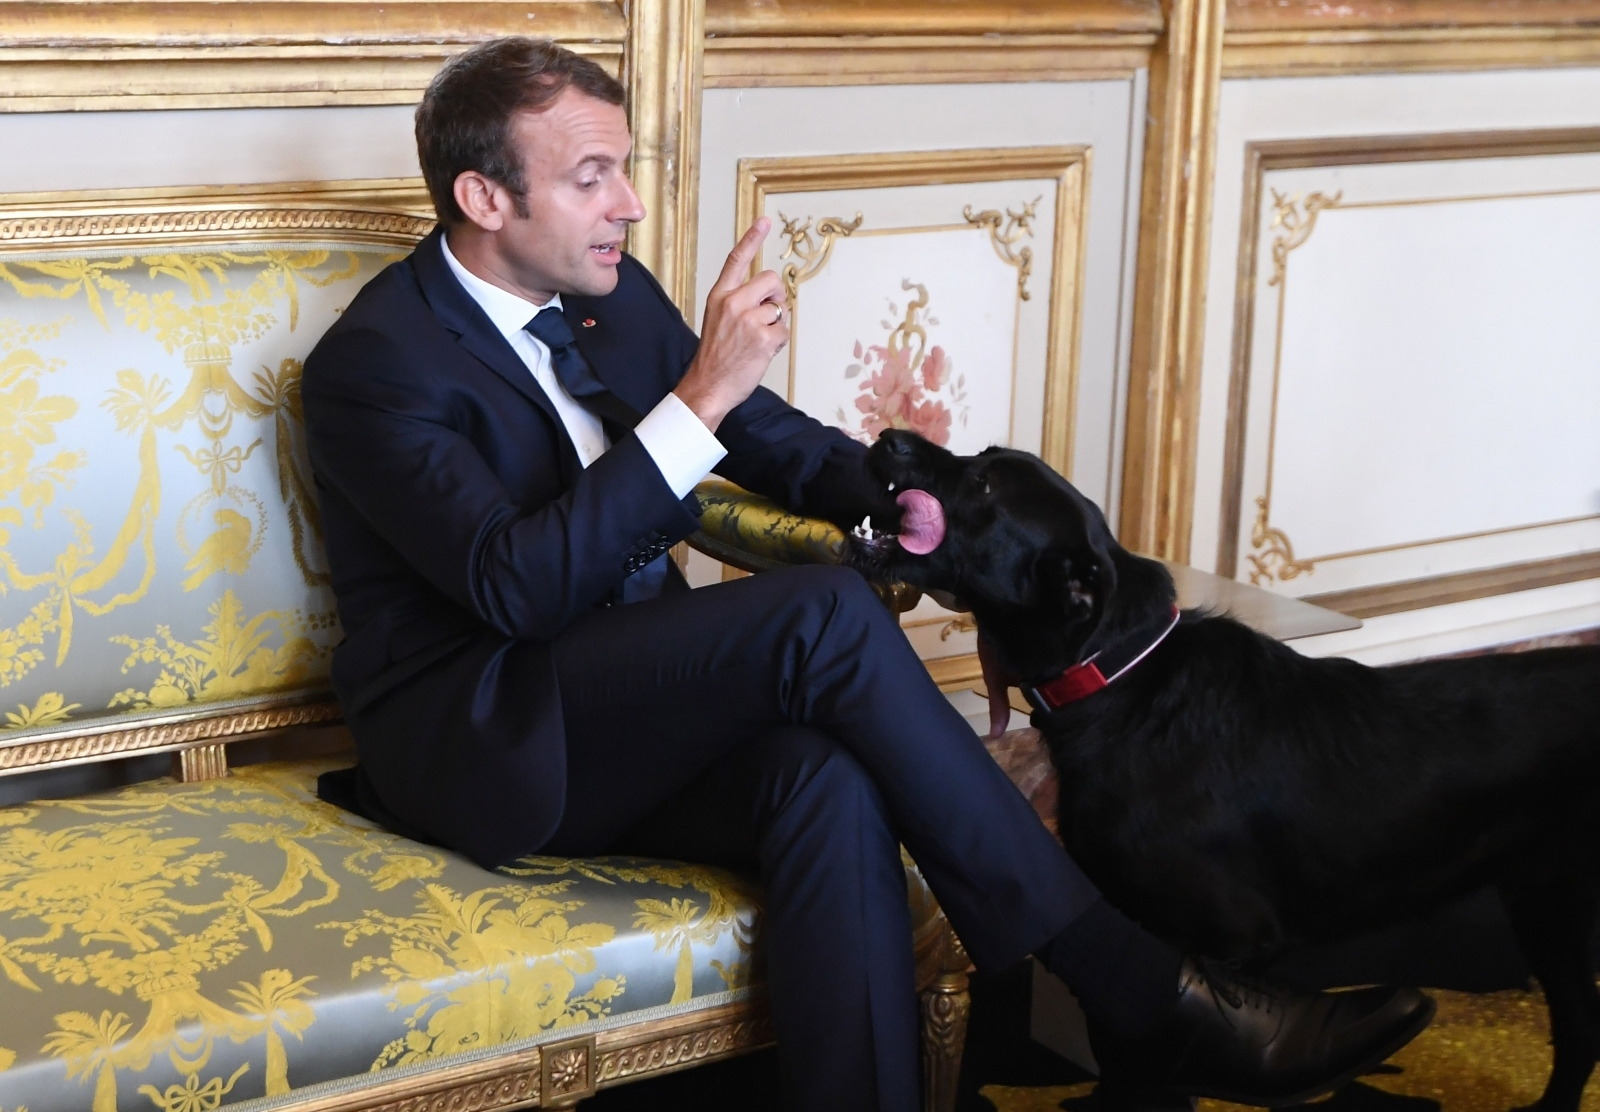 Oui Oui: France's presidential dog makes his mark